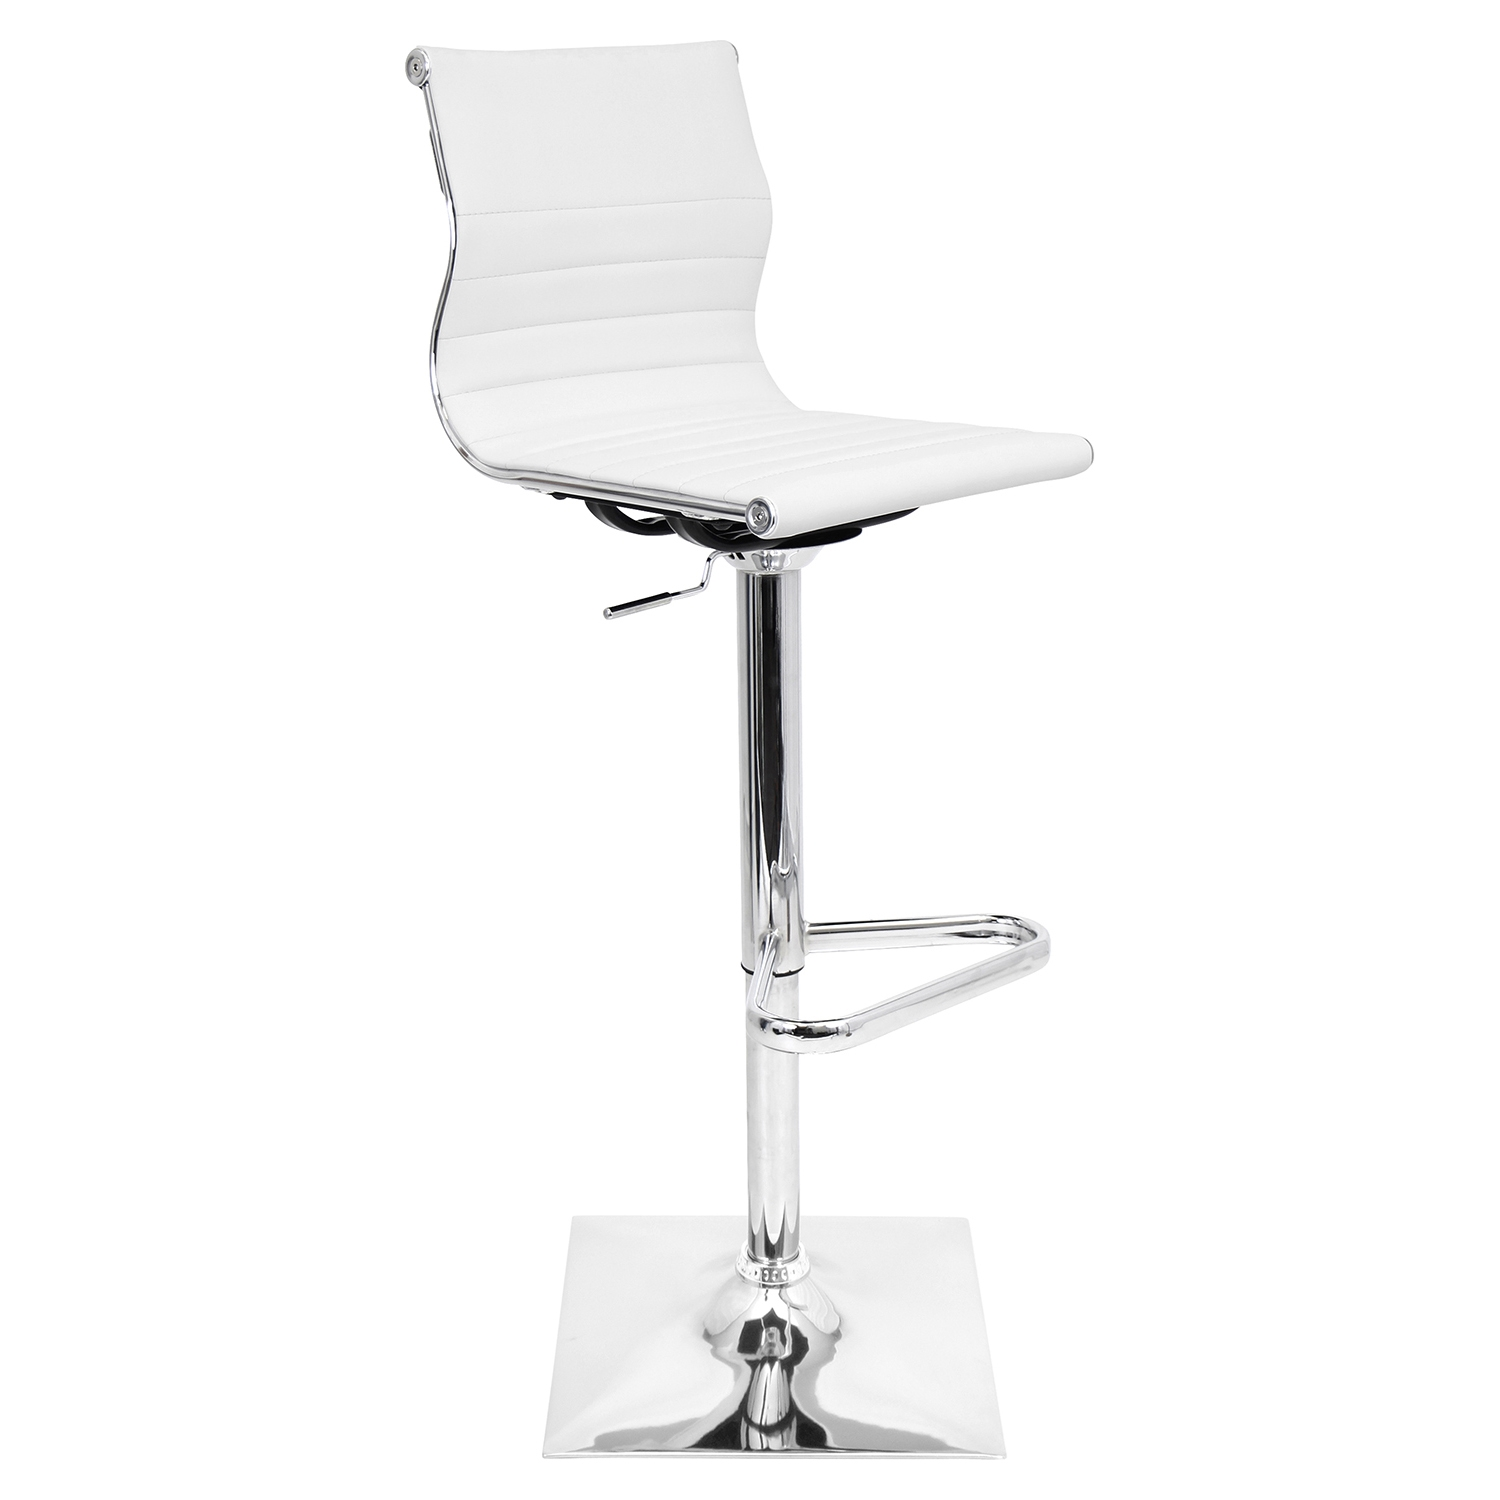 Master Height Adjustable Barstool - Swivel, White - LMS-BS-TW-MASTER-W